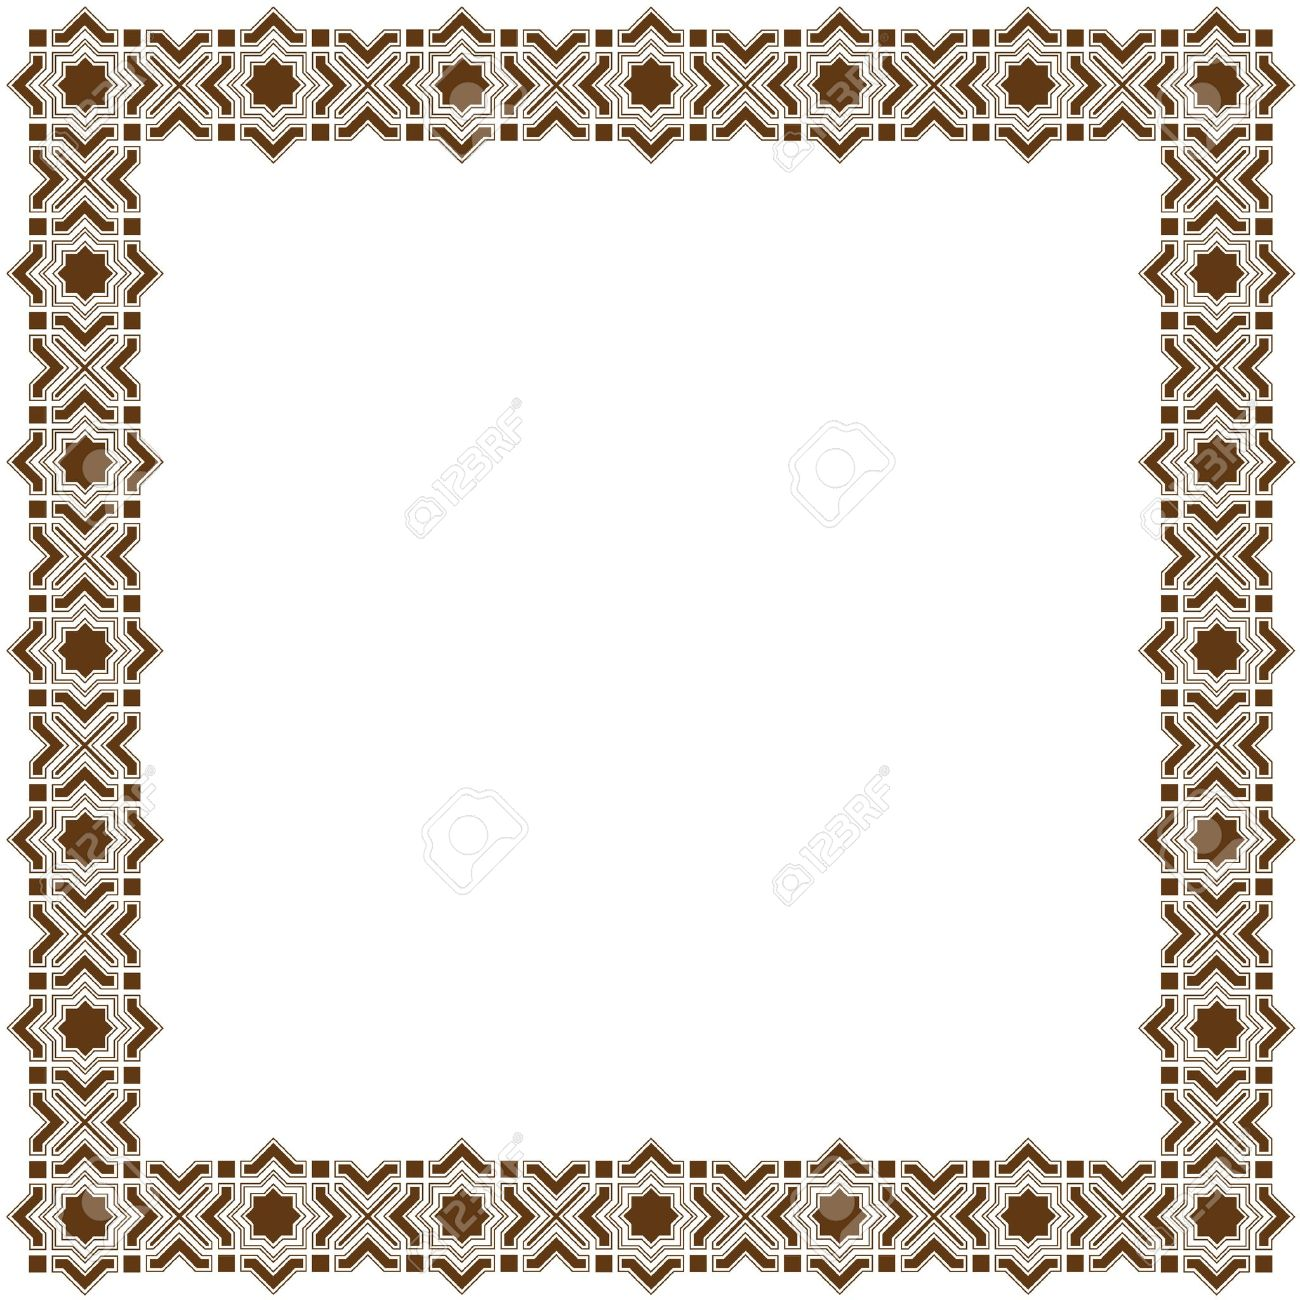 Simple decorative islamic frame royalty free cliparts vectors and simple decorative islamic frame stock vector 12825688 altavistaventures Images